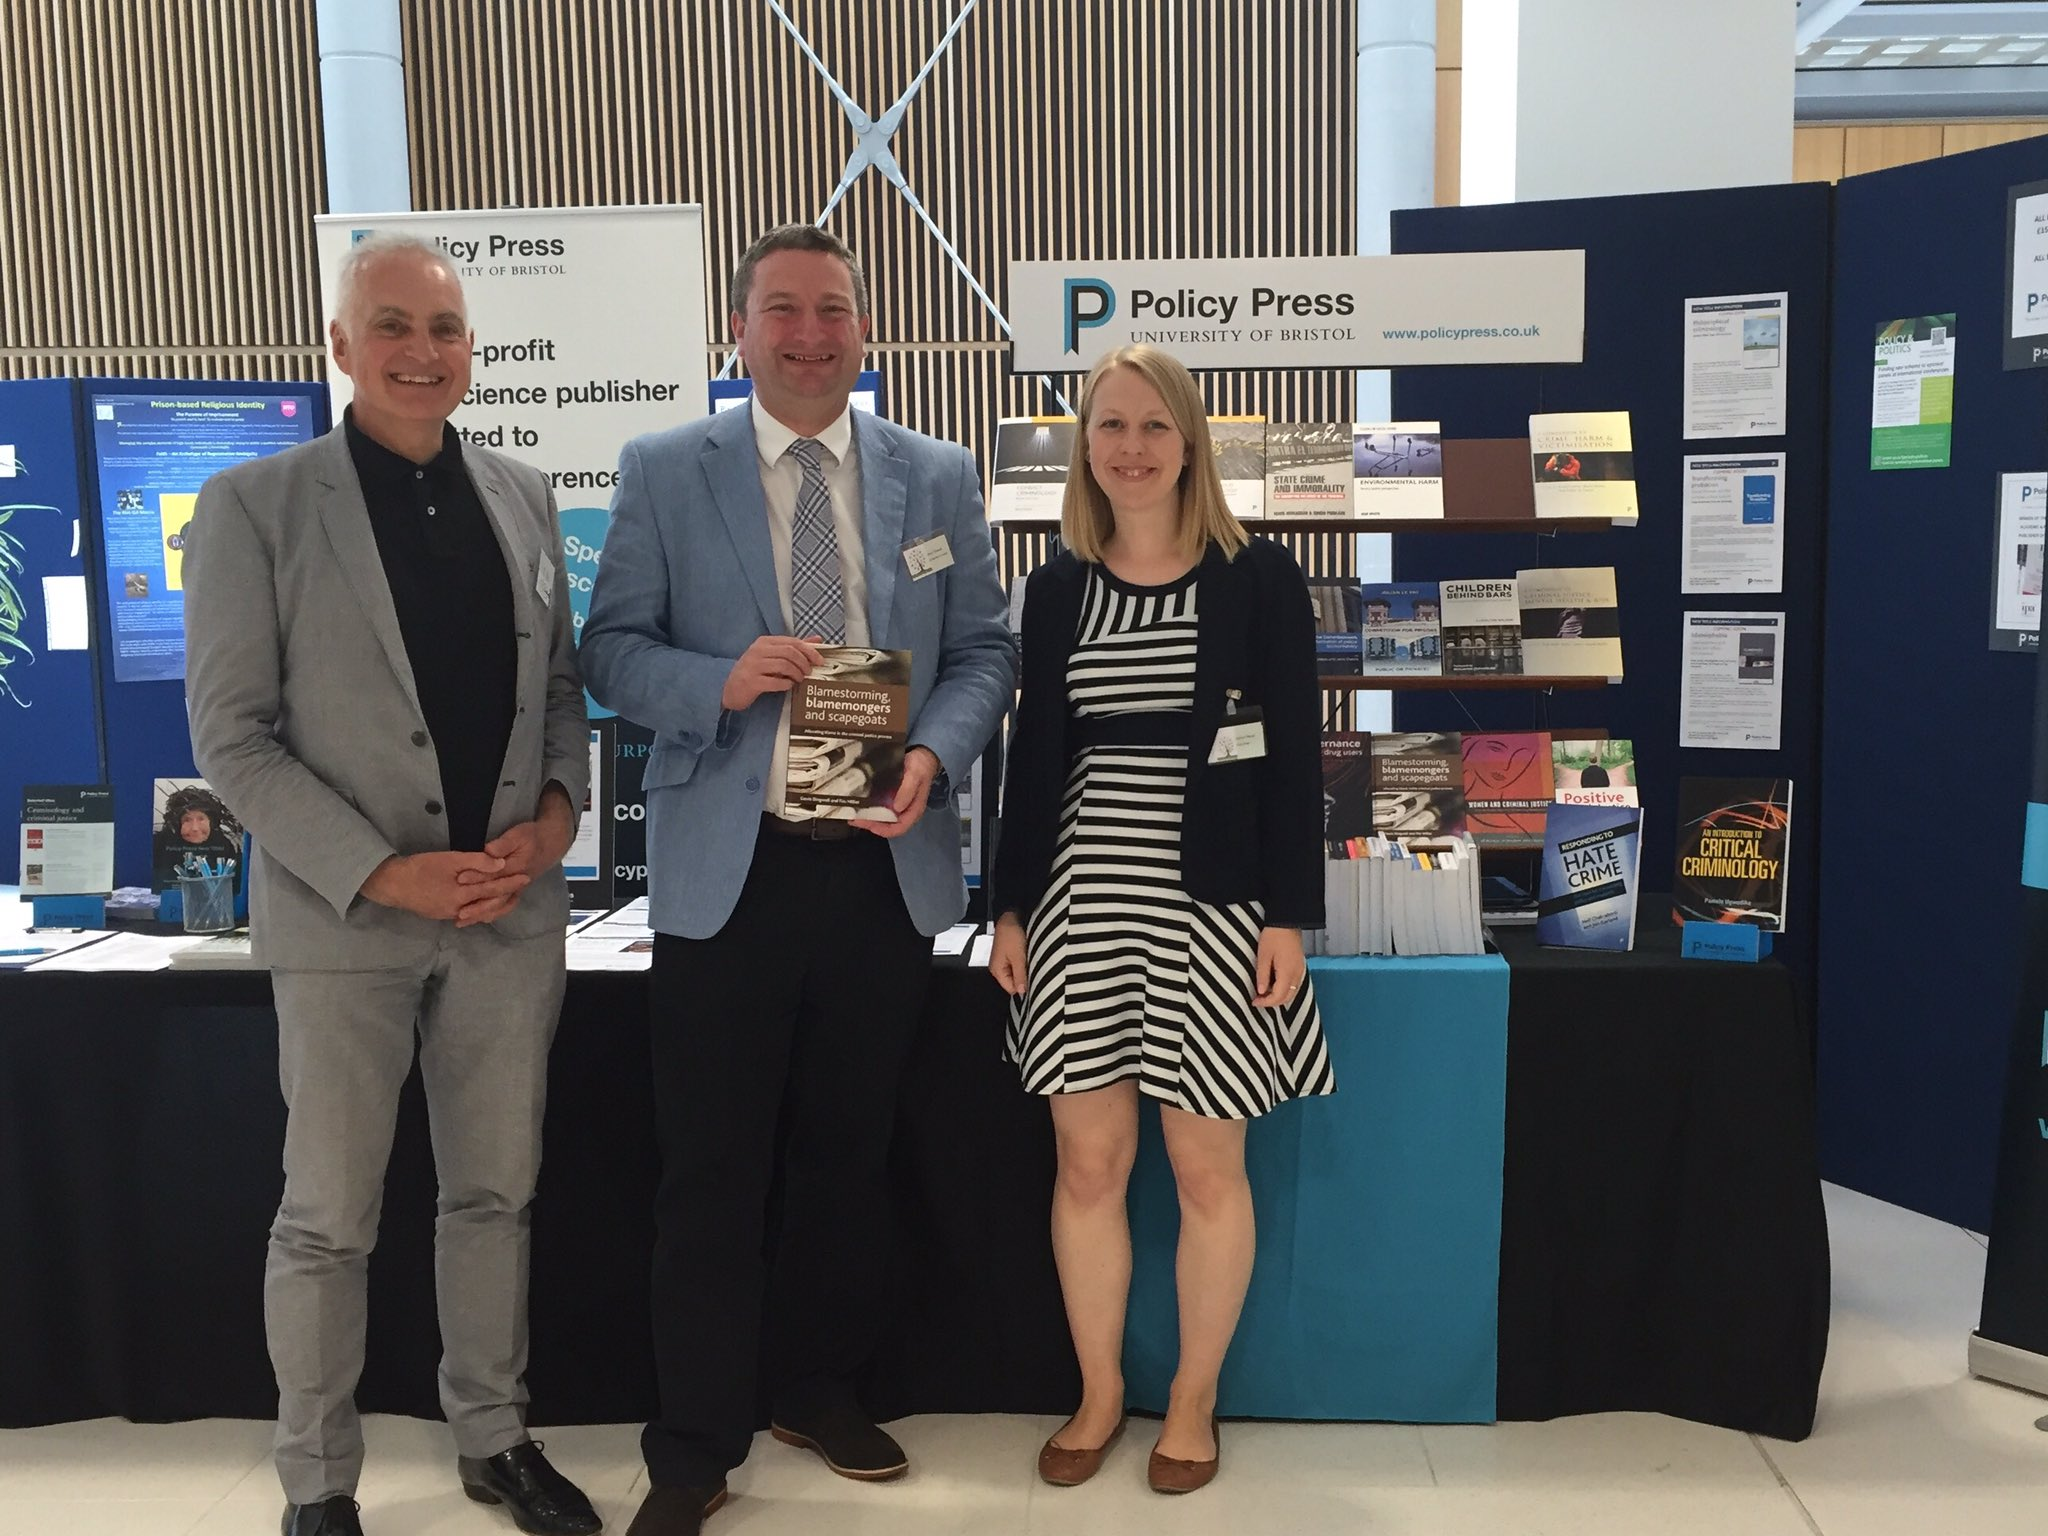 With @TimHillier @TPPvictoria @policypress who published our Blamestorming book #BSCConf16 @DMULawSchool https://t.co/YDor24cLuS